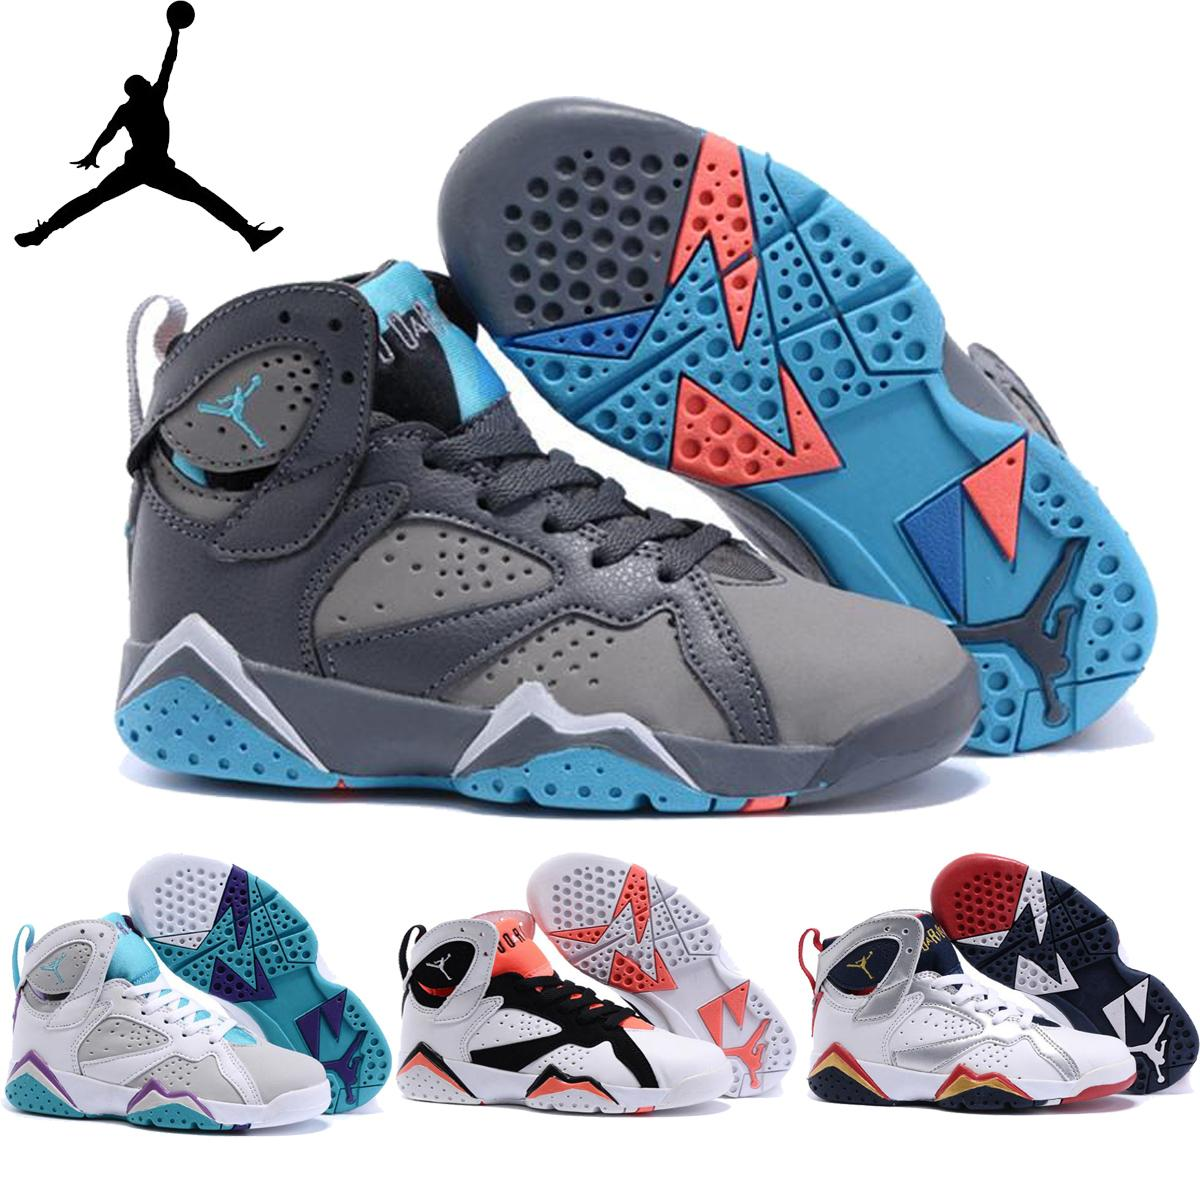 Jordans Shoes Official Site posicionamientotiendas.com.es 76730a71283c